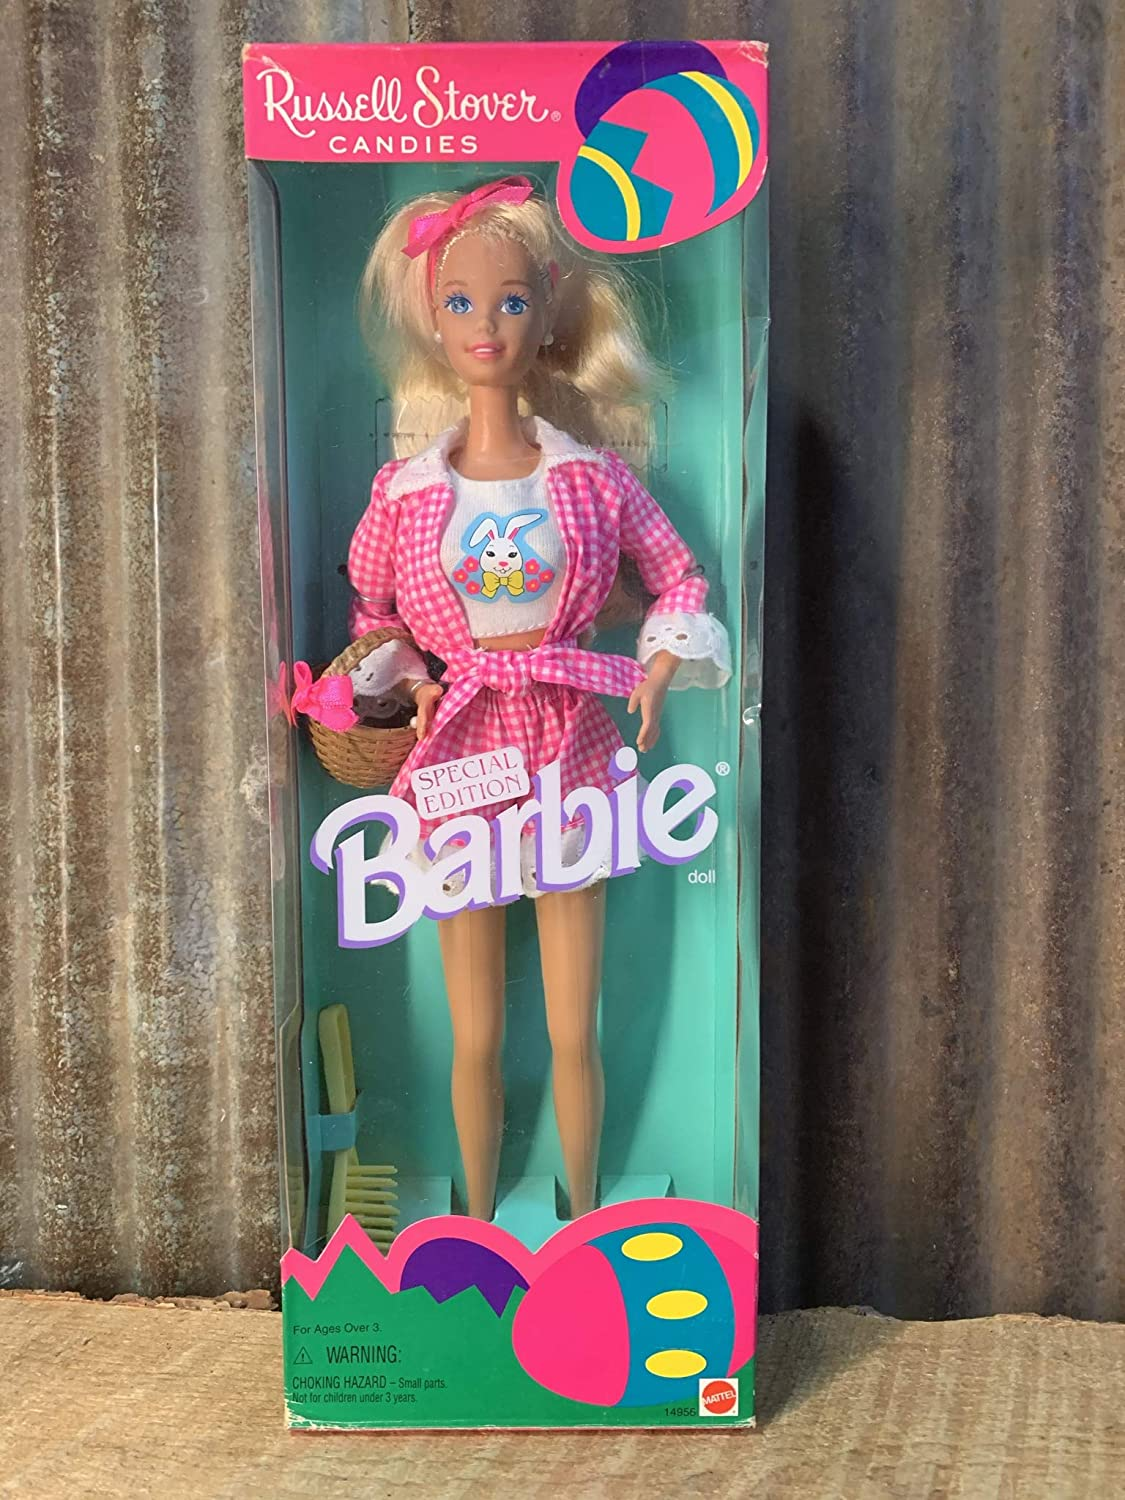 Barbie Russell Stover Candies Doll